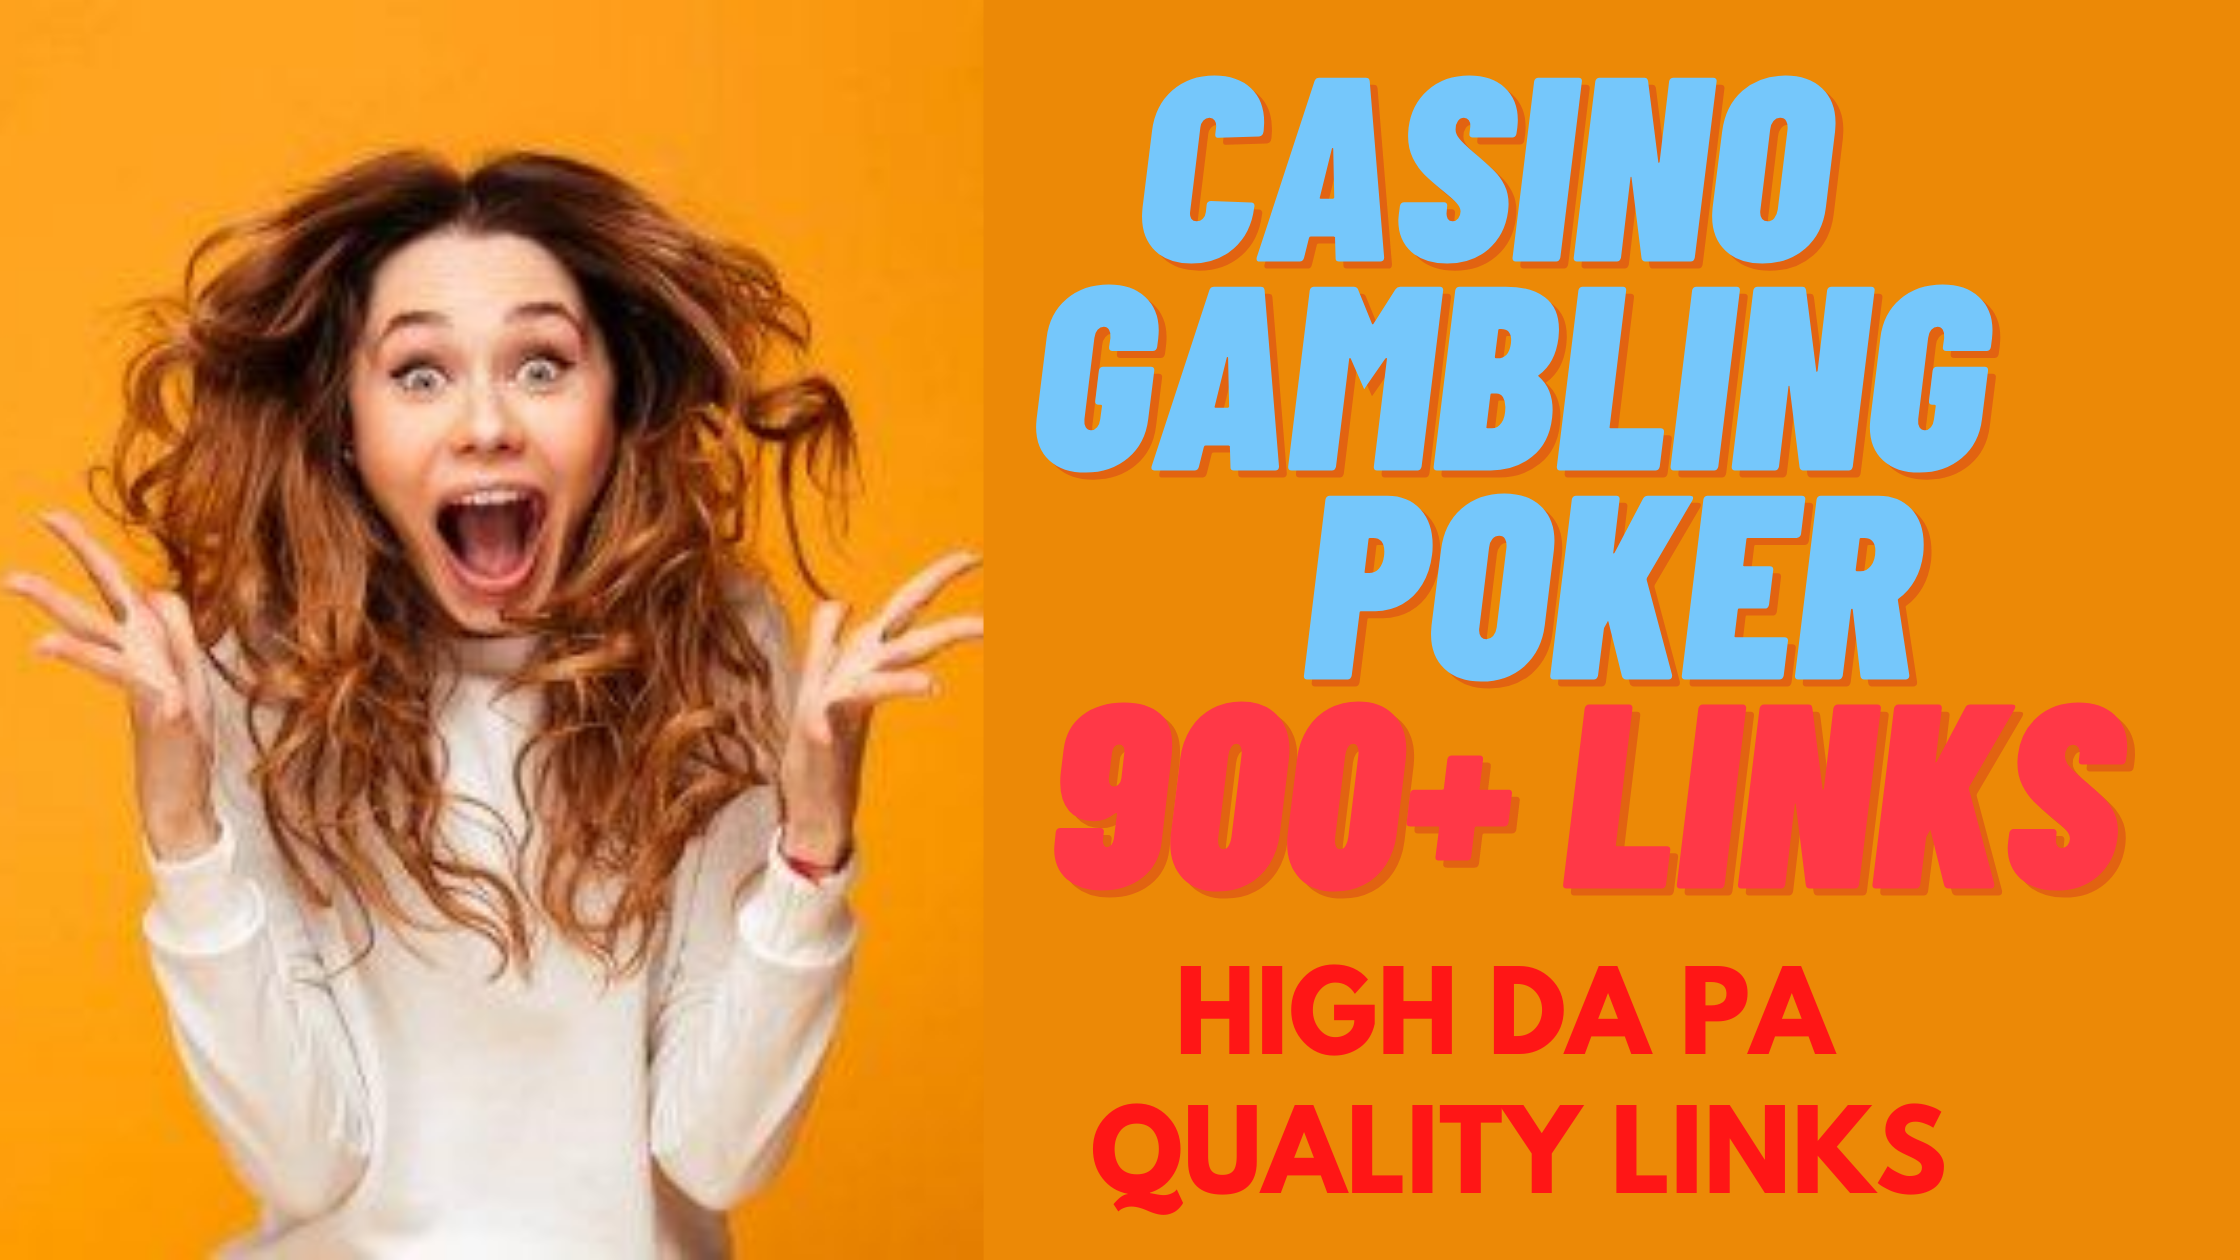 I Will Create ADULT & CASINO 800+ High DA PA Tired Backlinks to Boost Your Google Ranking Quickly